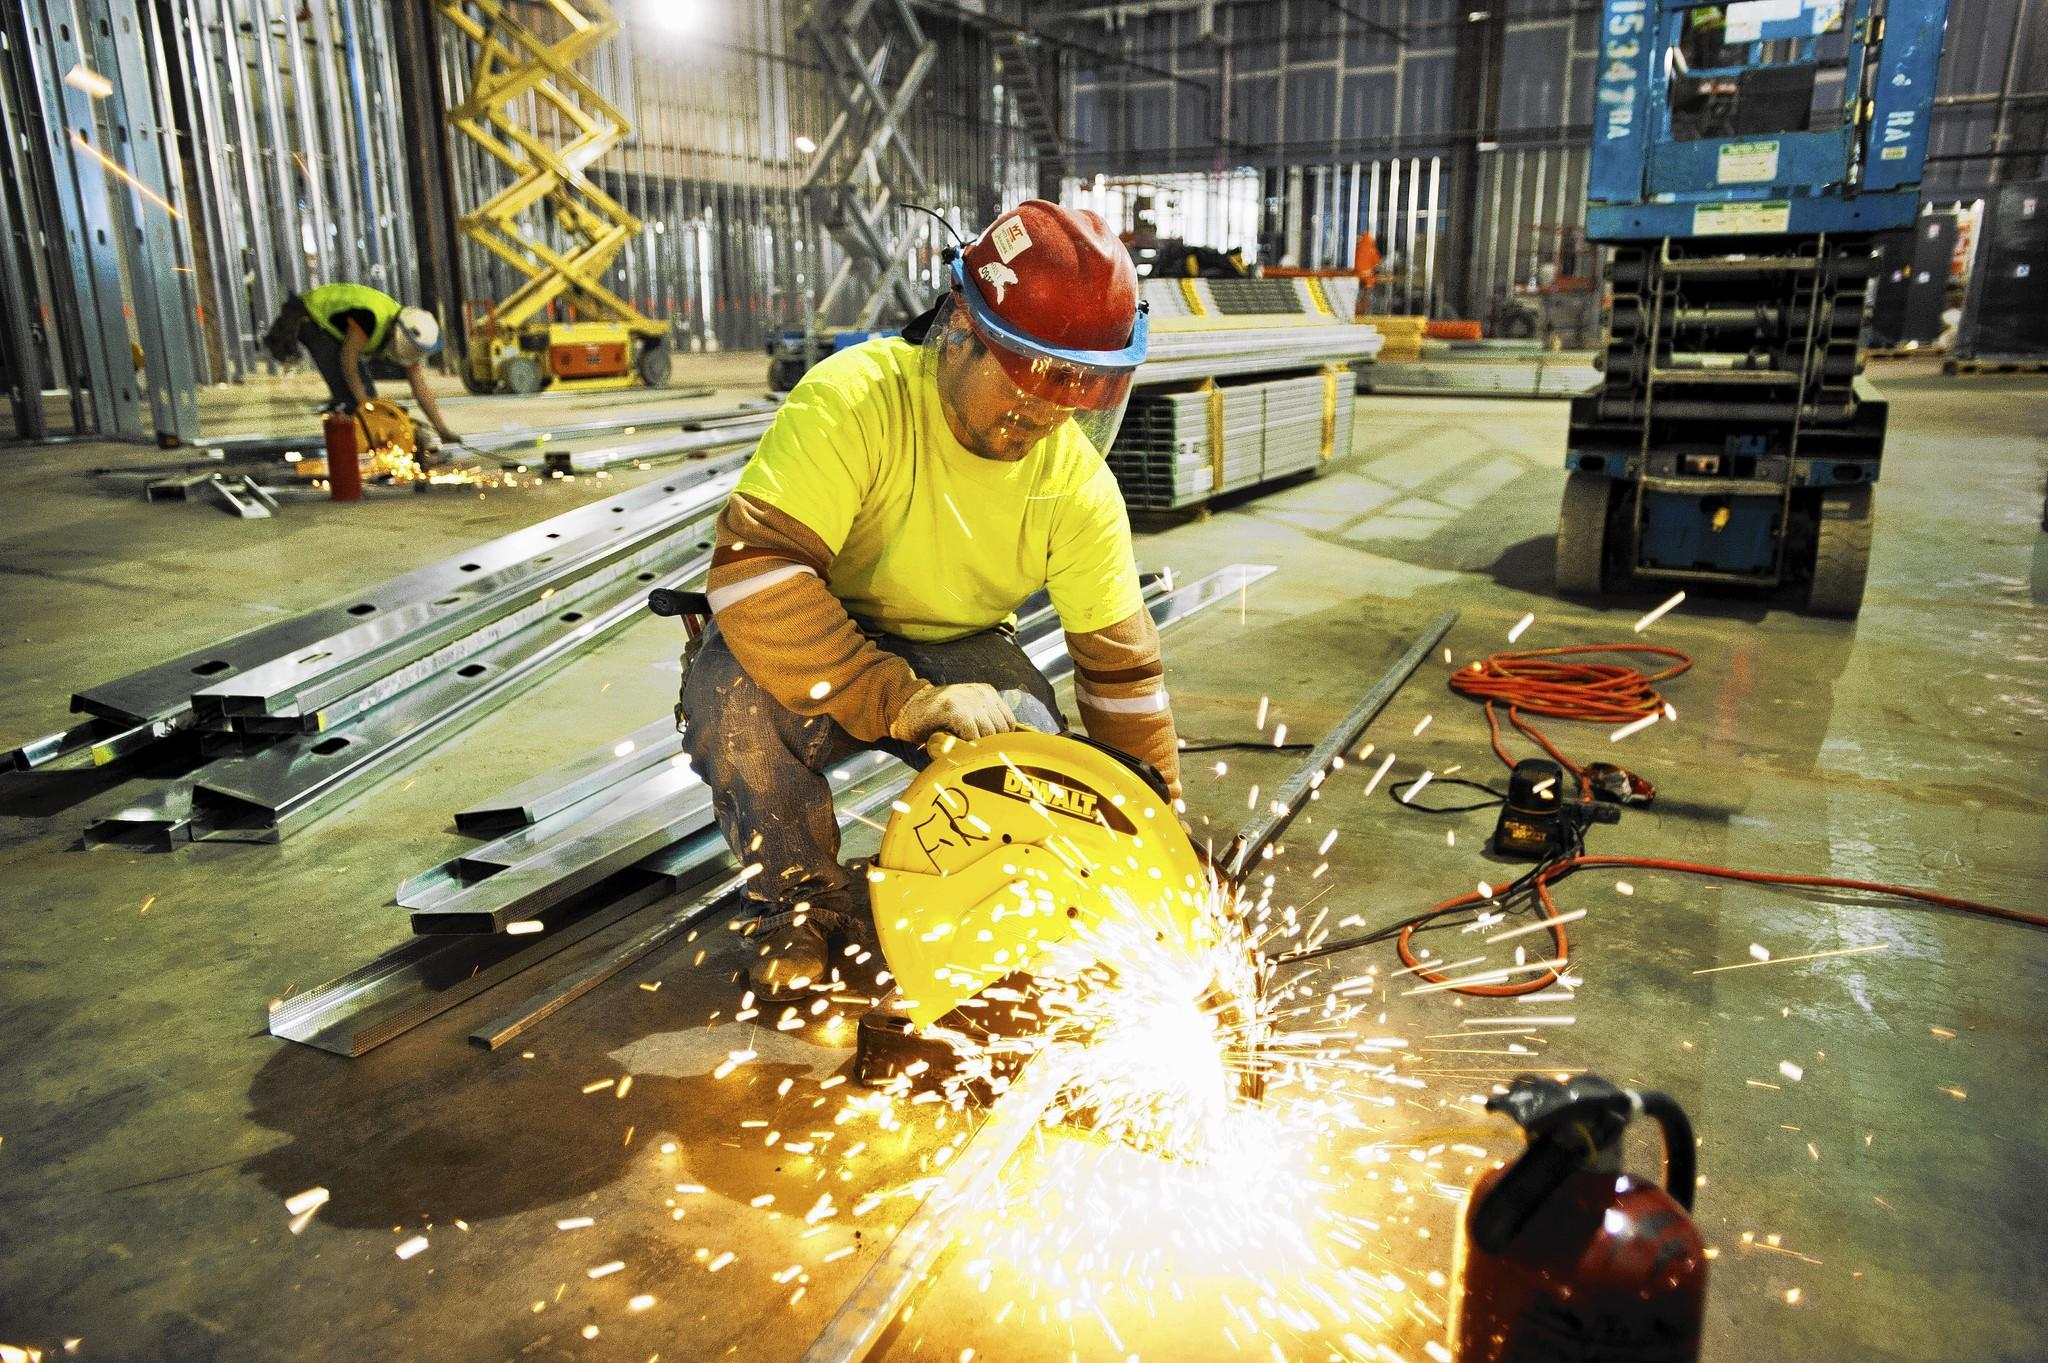 Construction worker David Quintanilla cuts steel supports before installation inside the Horseshoe Casino on Russell Street.